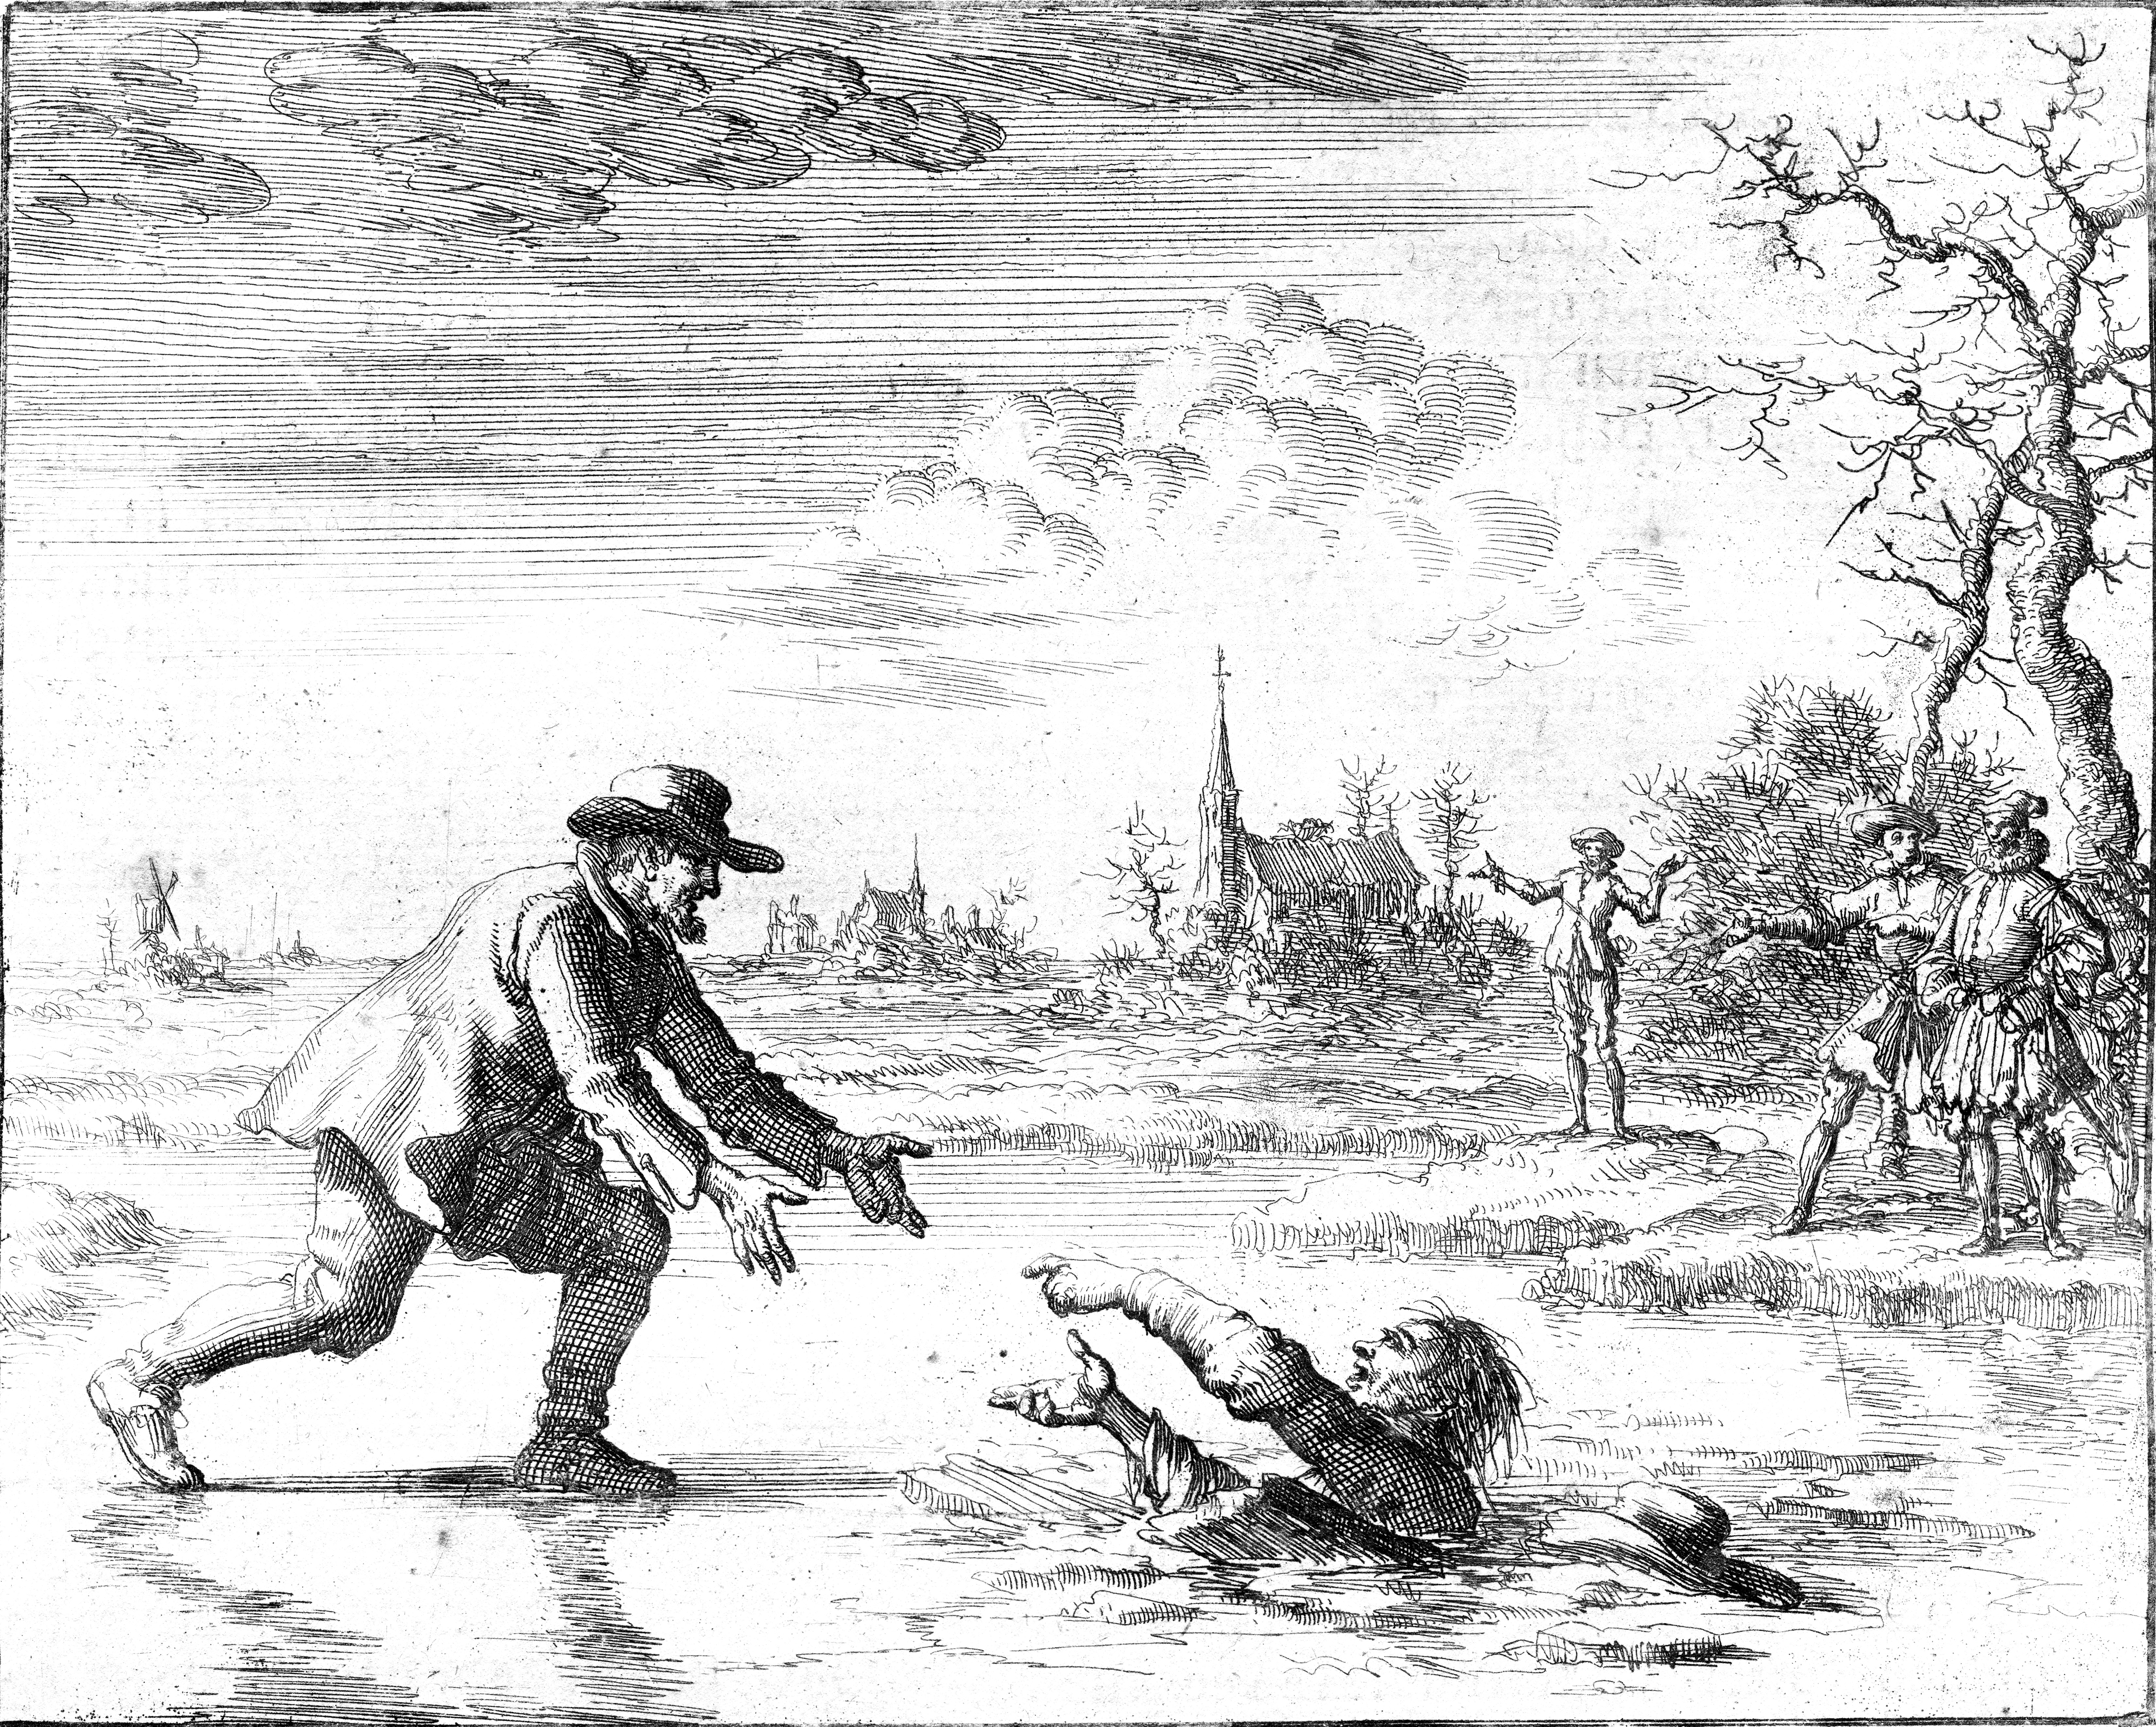 Anabaptist Dirk Willems saves his pursuer